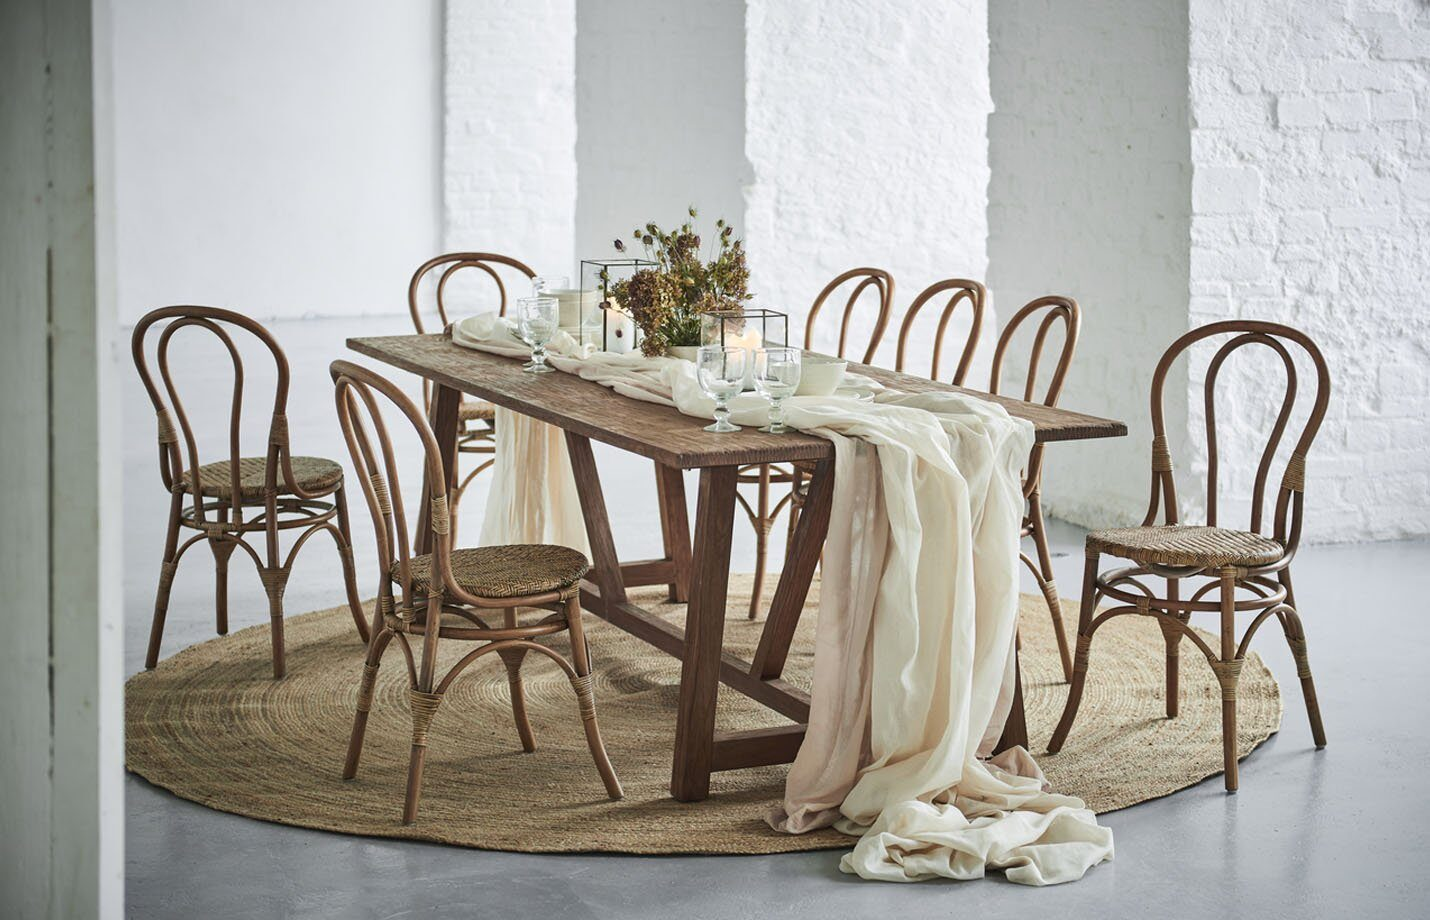 Bent-Rattan-Bistro-Chair-by-fabiia-LS01